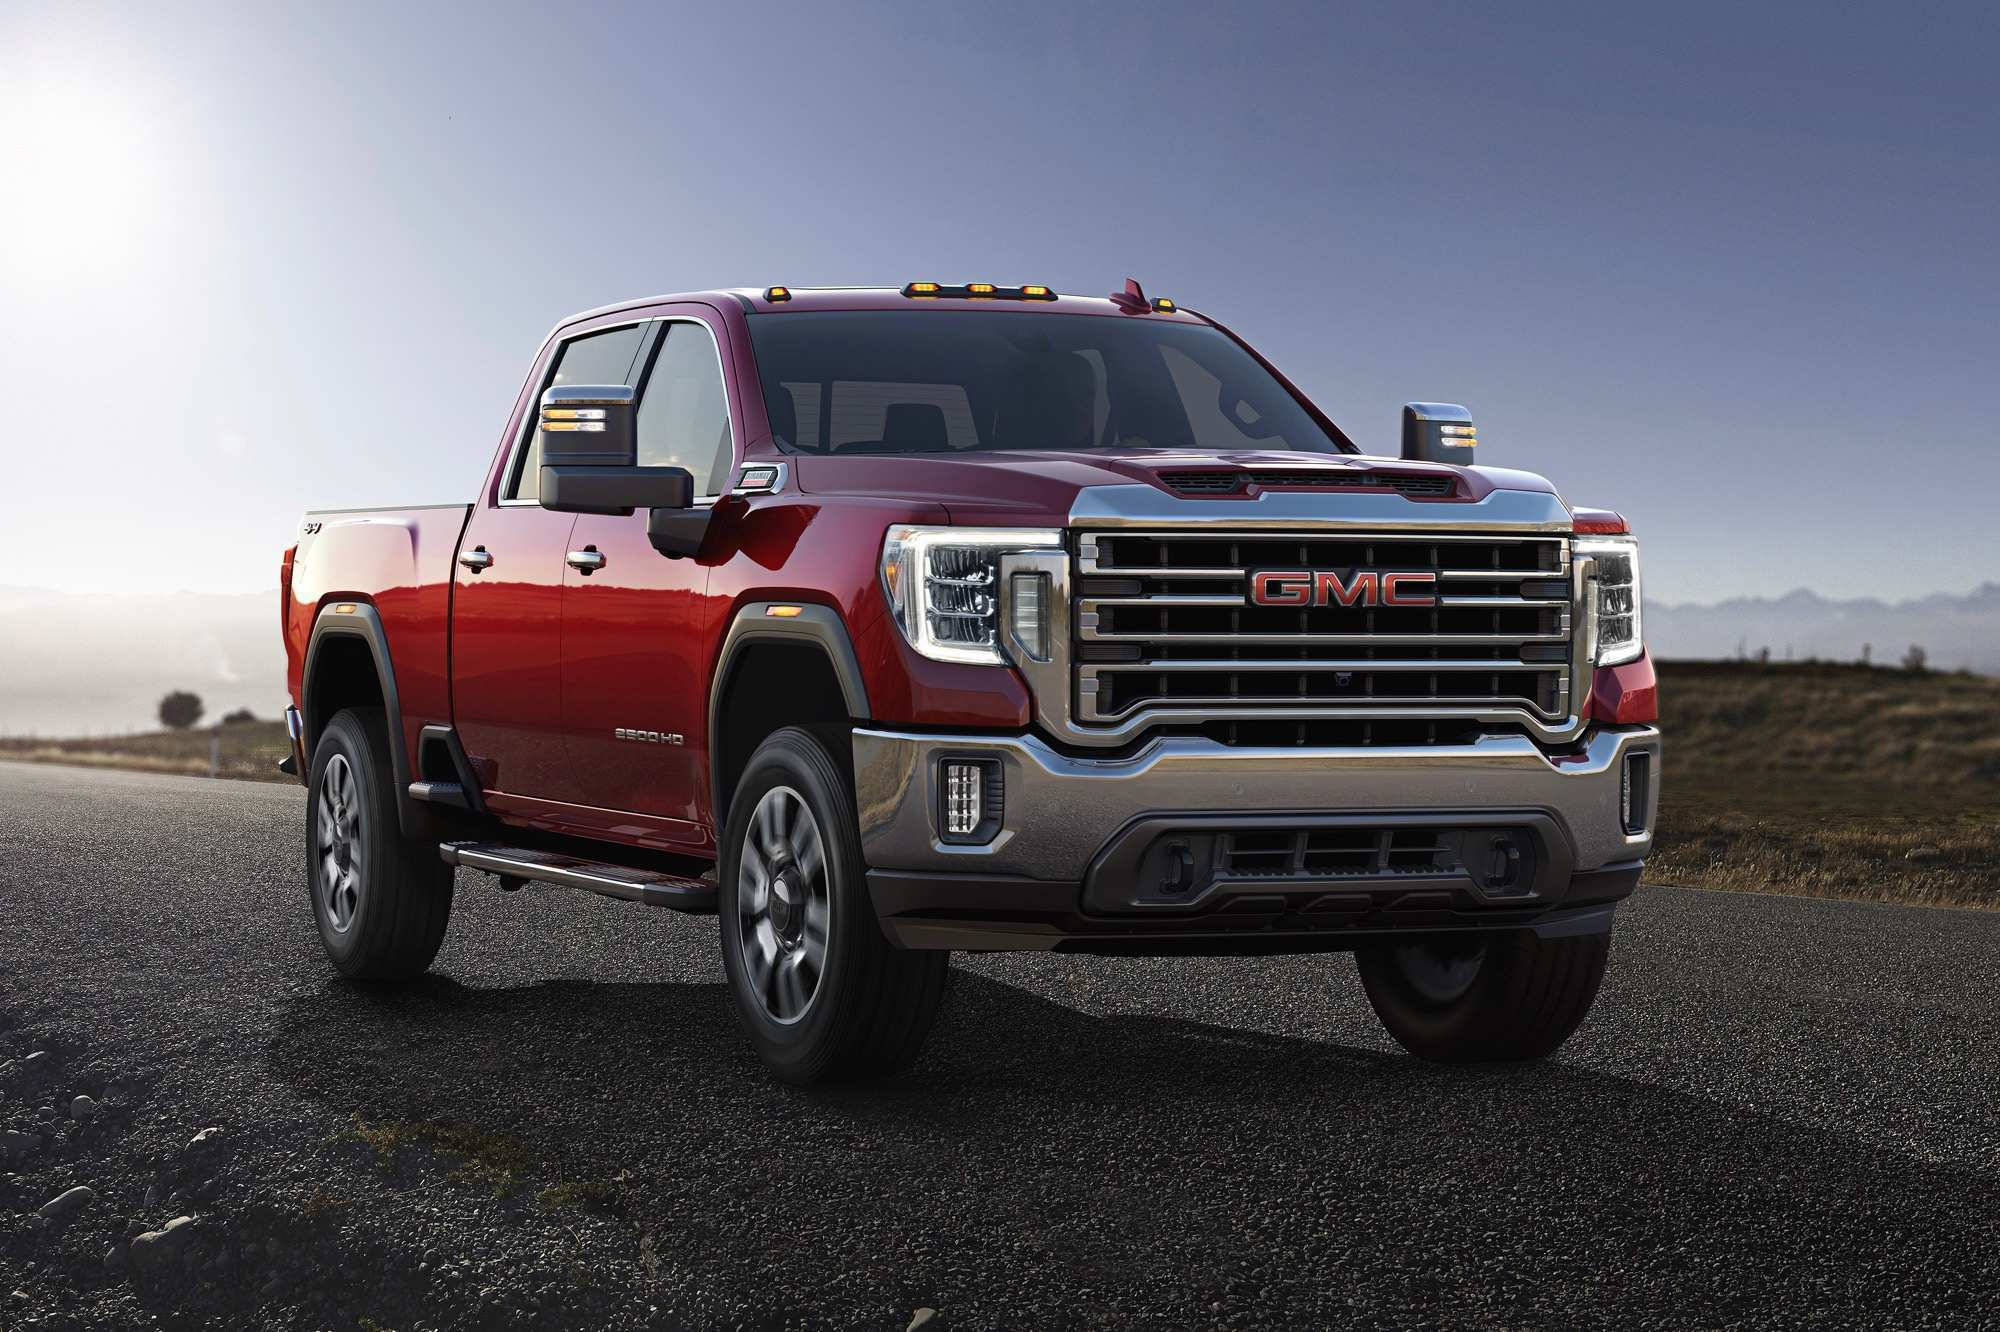 83 The GMC New Models 2020 Rumors